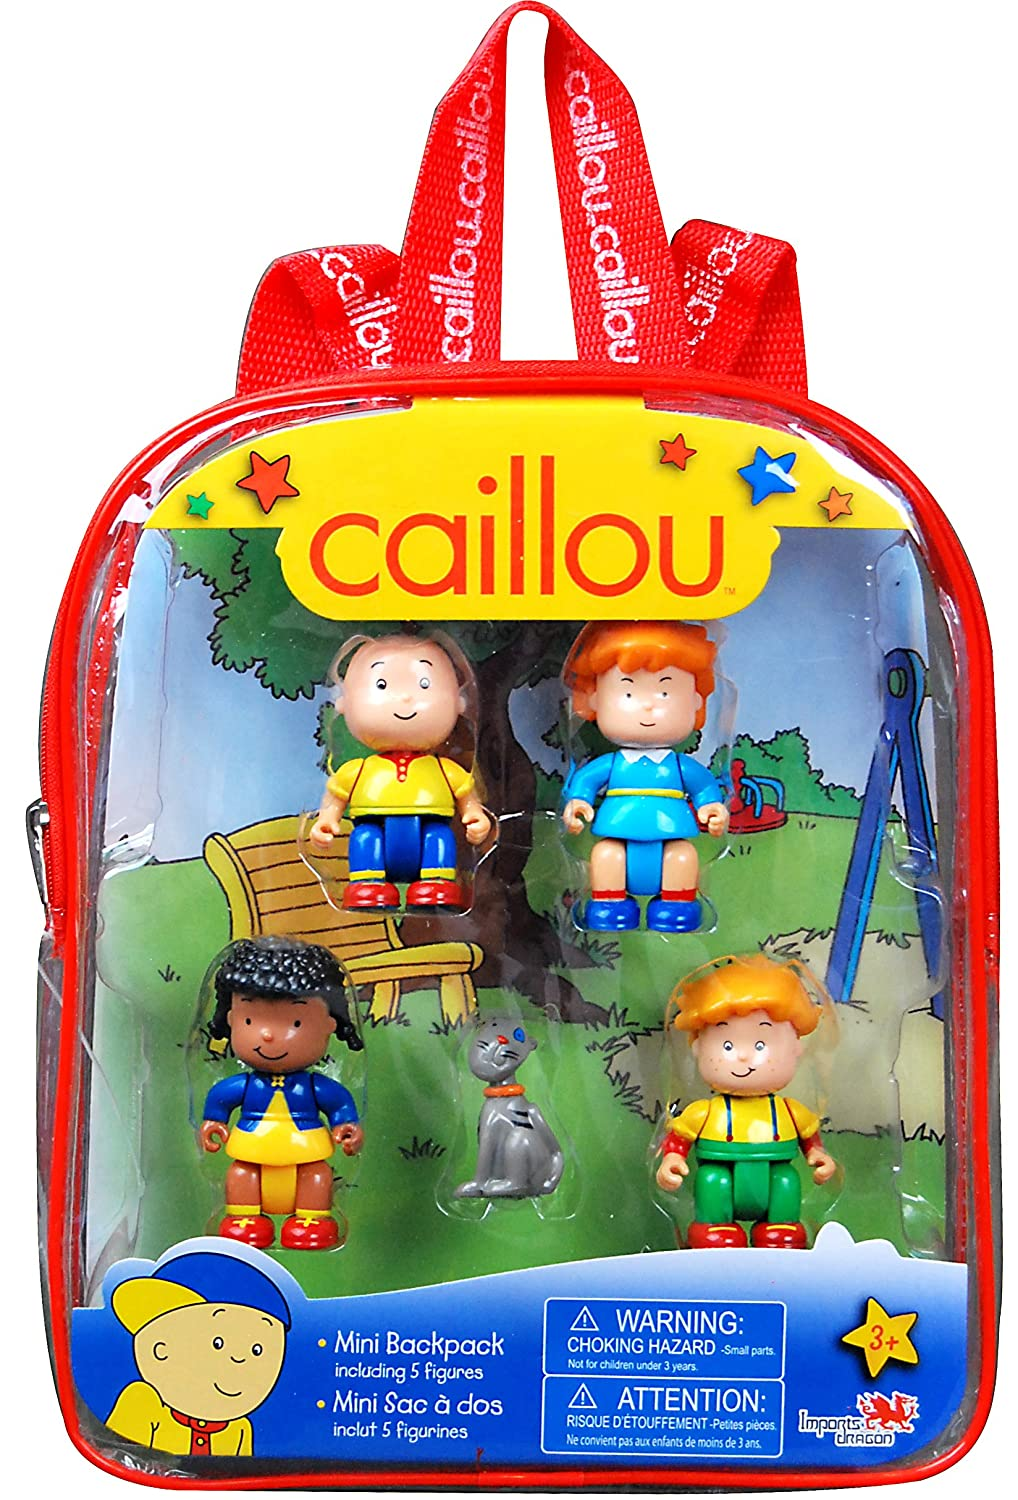 styles may vary Caillou Mini Backpack with Figures